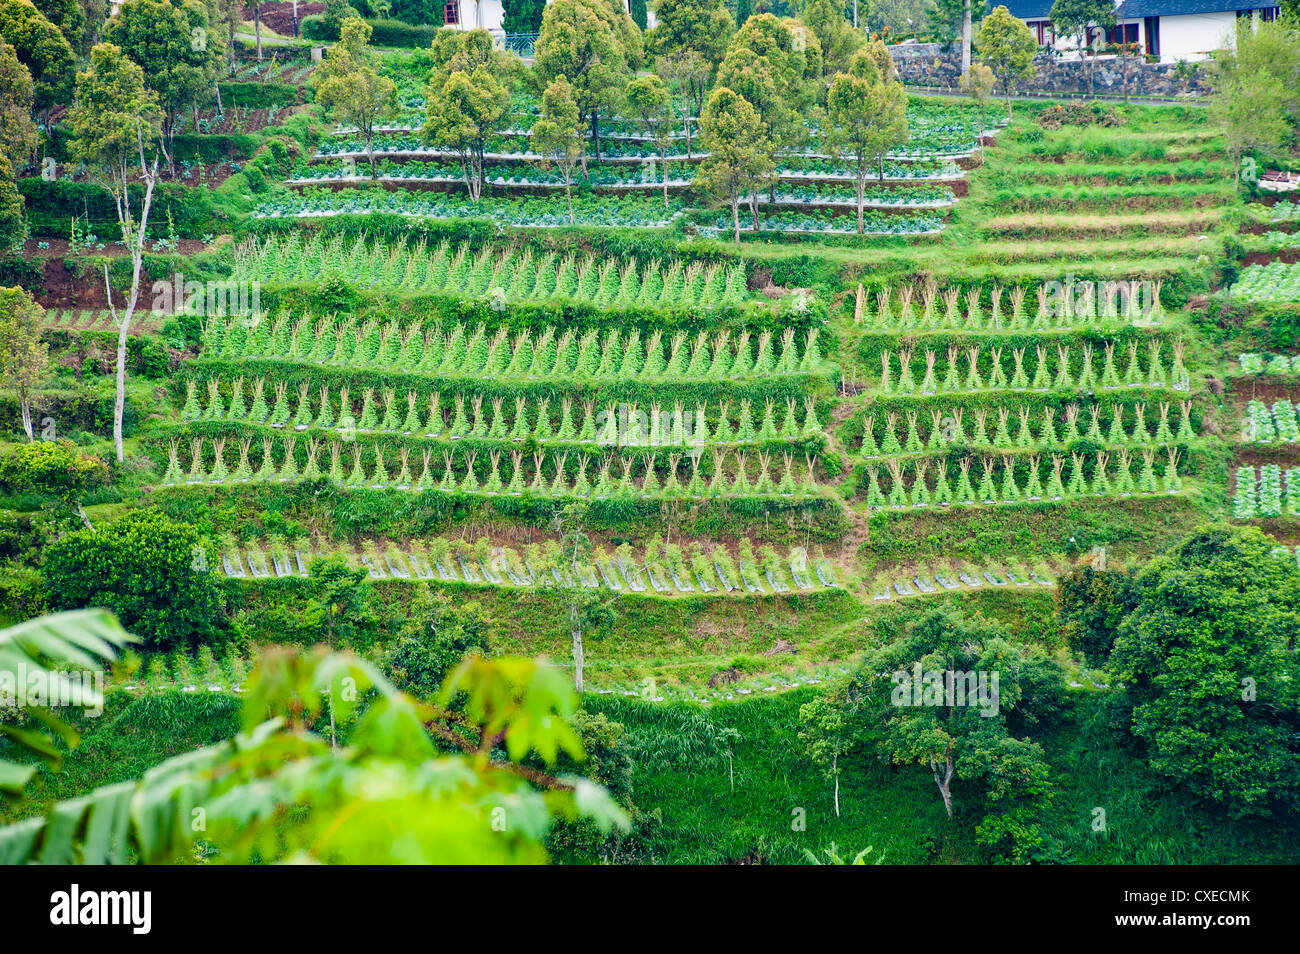 Vegetable terraces on a steep hill, Bandung, Java, Indonesia, Southeast Asia, Asia - Stock Image